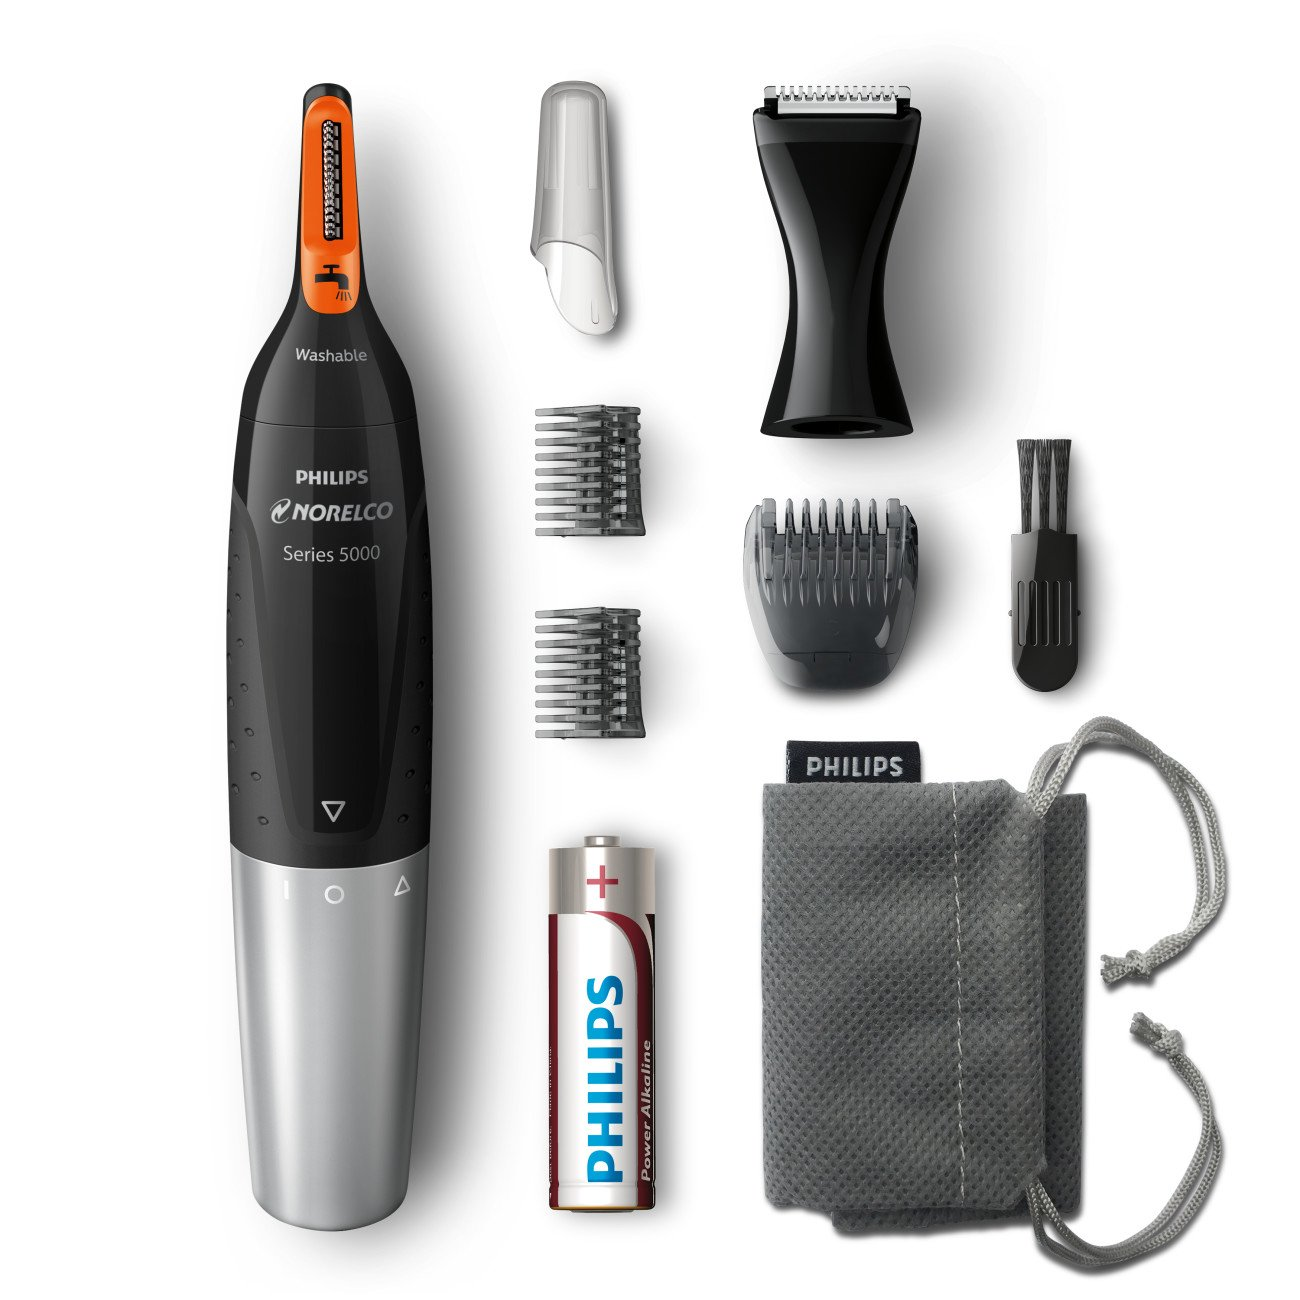 Philips Norelco Nose Hair Trimmer 5100, NT5175/42, Washable Mens Precision Groomer for Nose, Ears, Eyebrows, Neck, and Sideburns by Philips Norelco